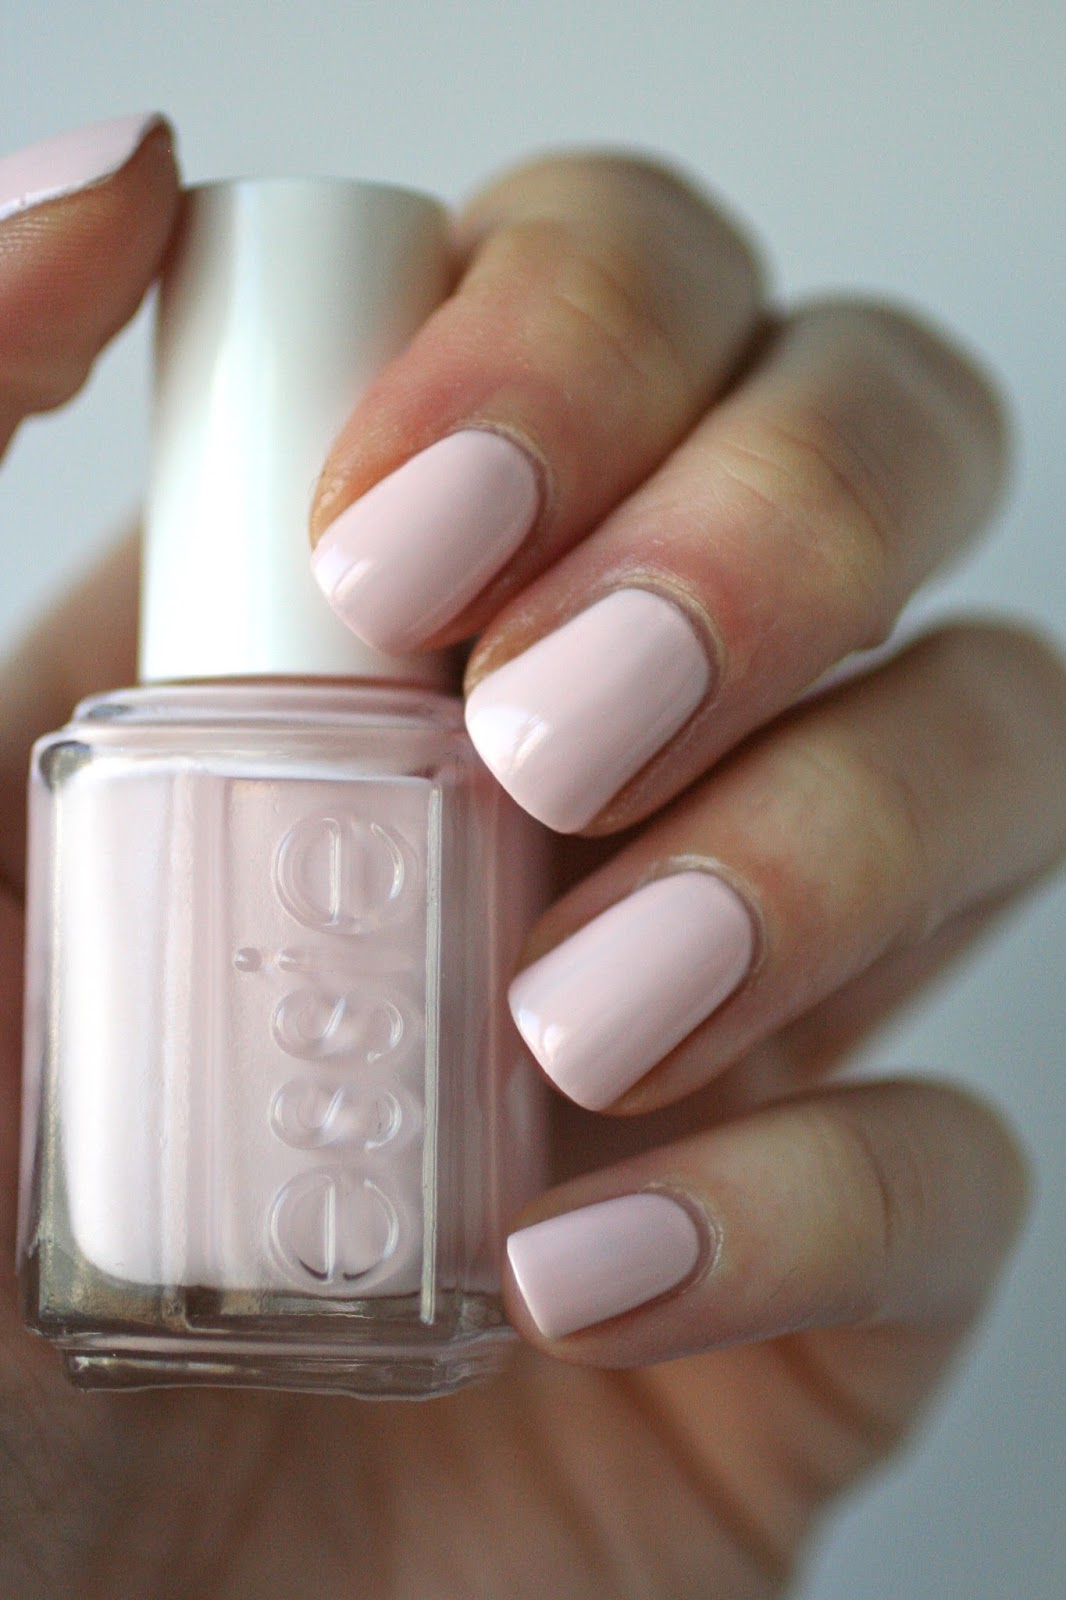 Classics : Essie Fiji (was it reformulated?) | Essie Envy